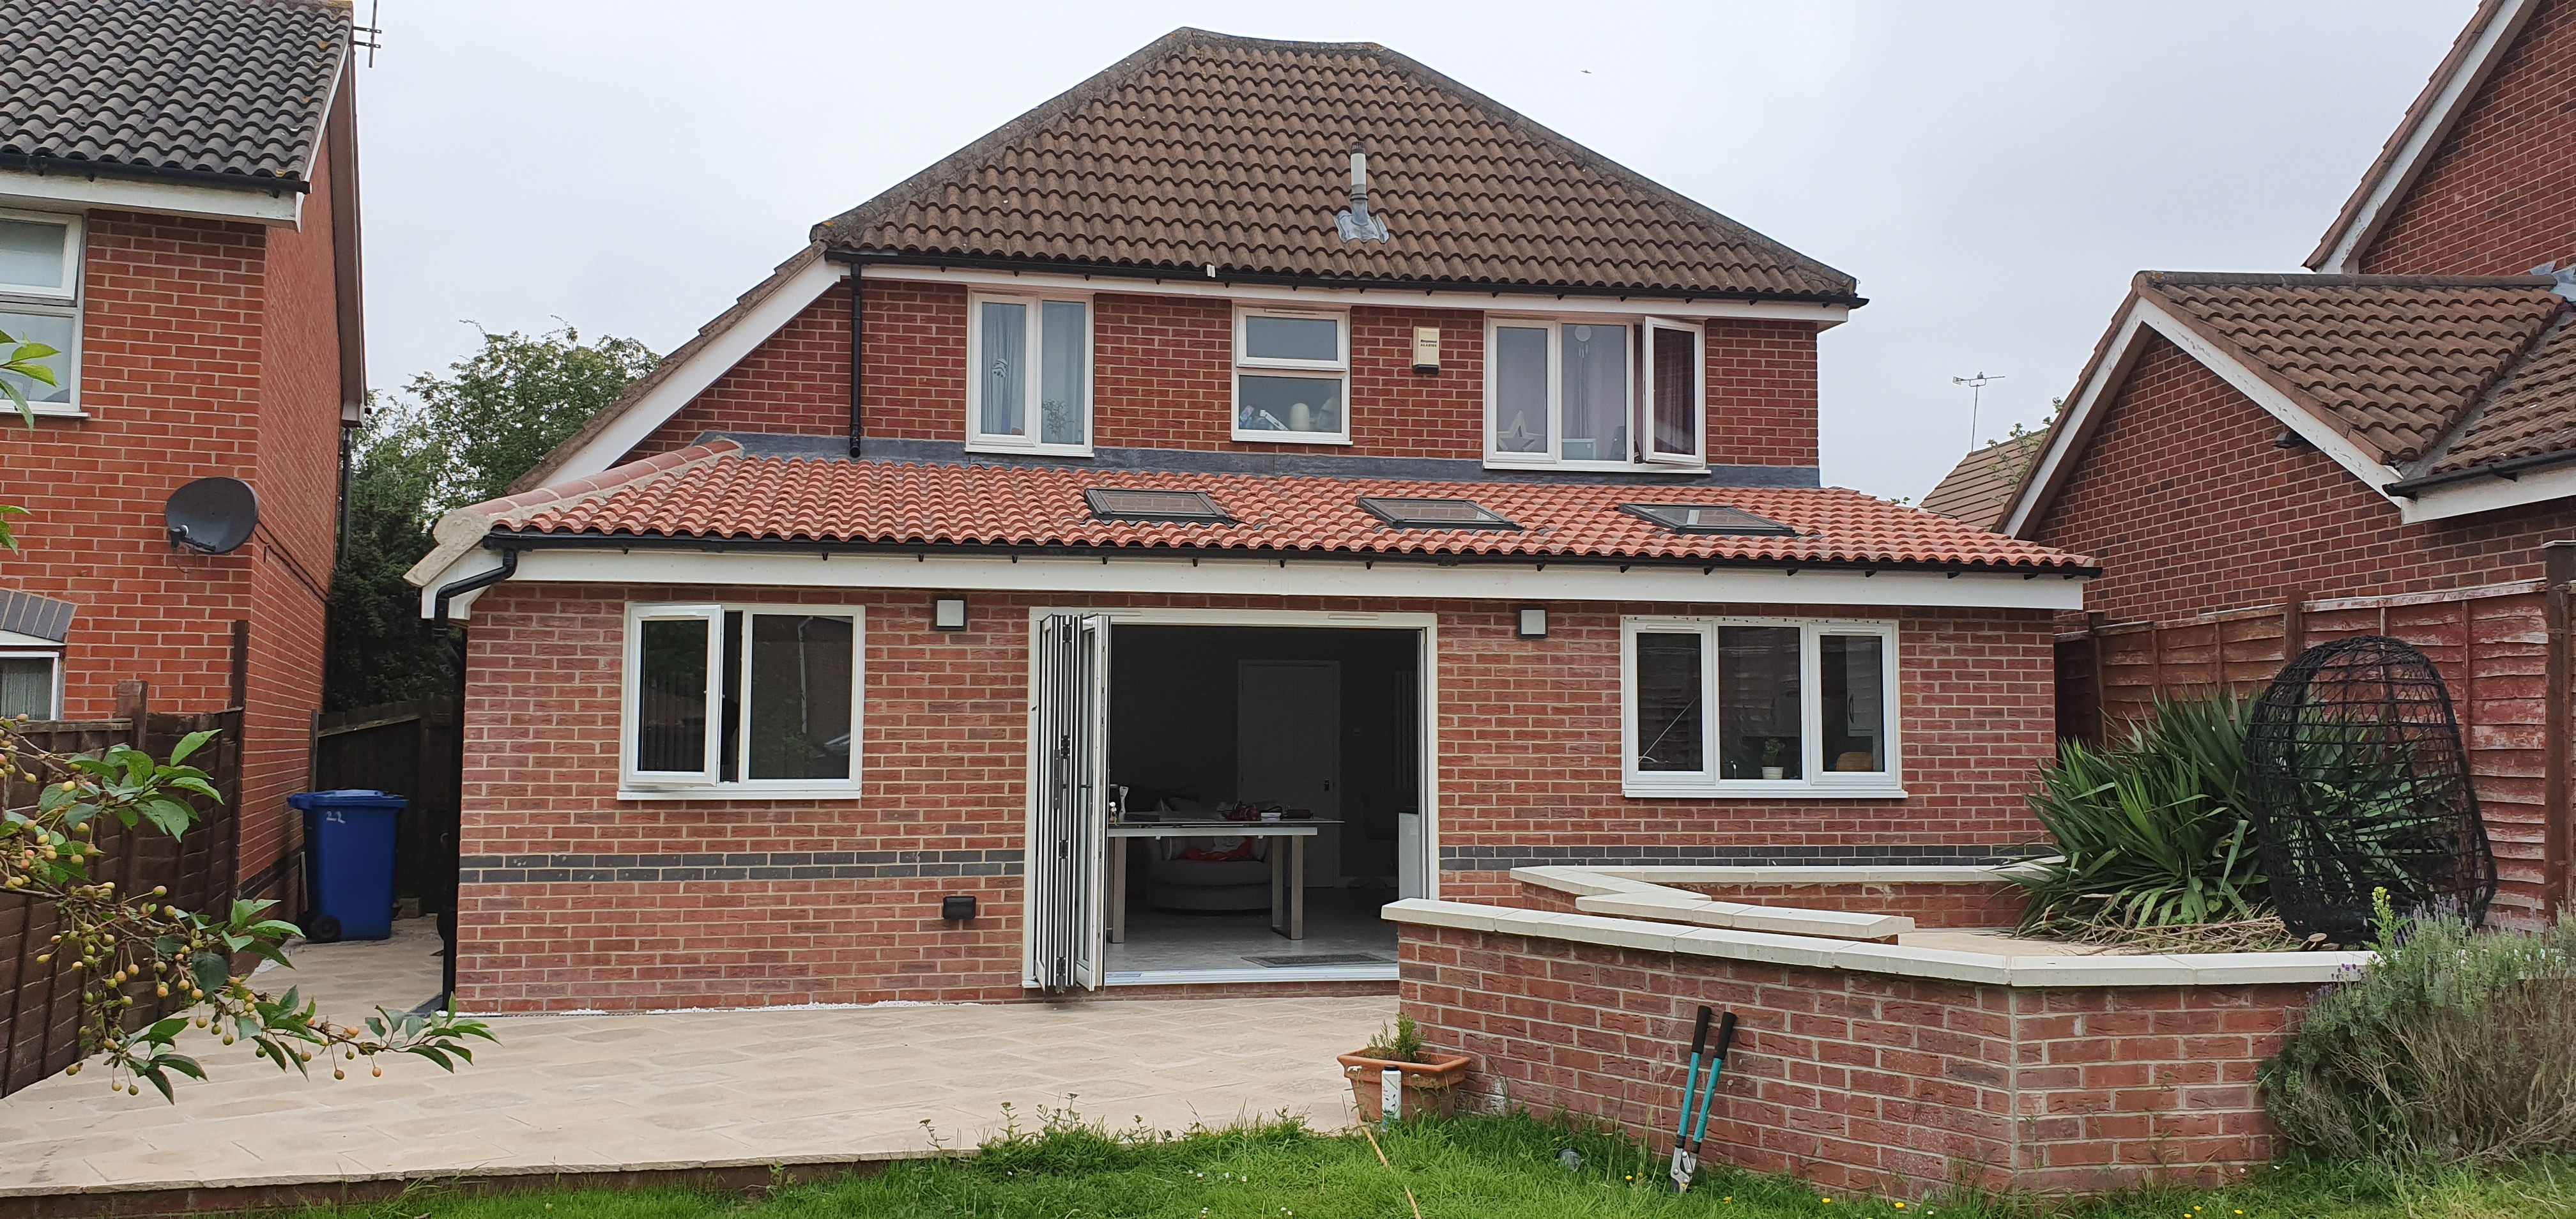 Single storey rear kitchen extension and landscaping